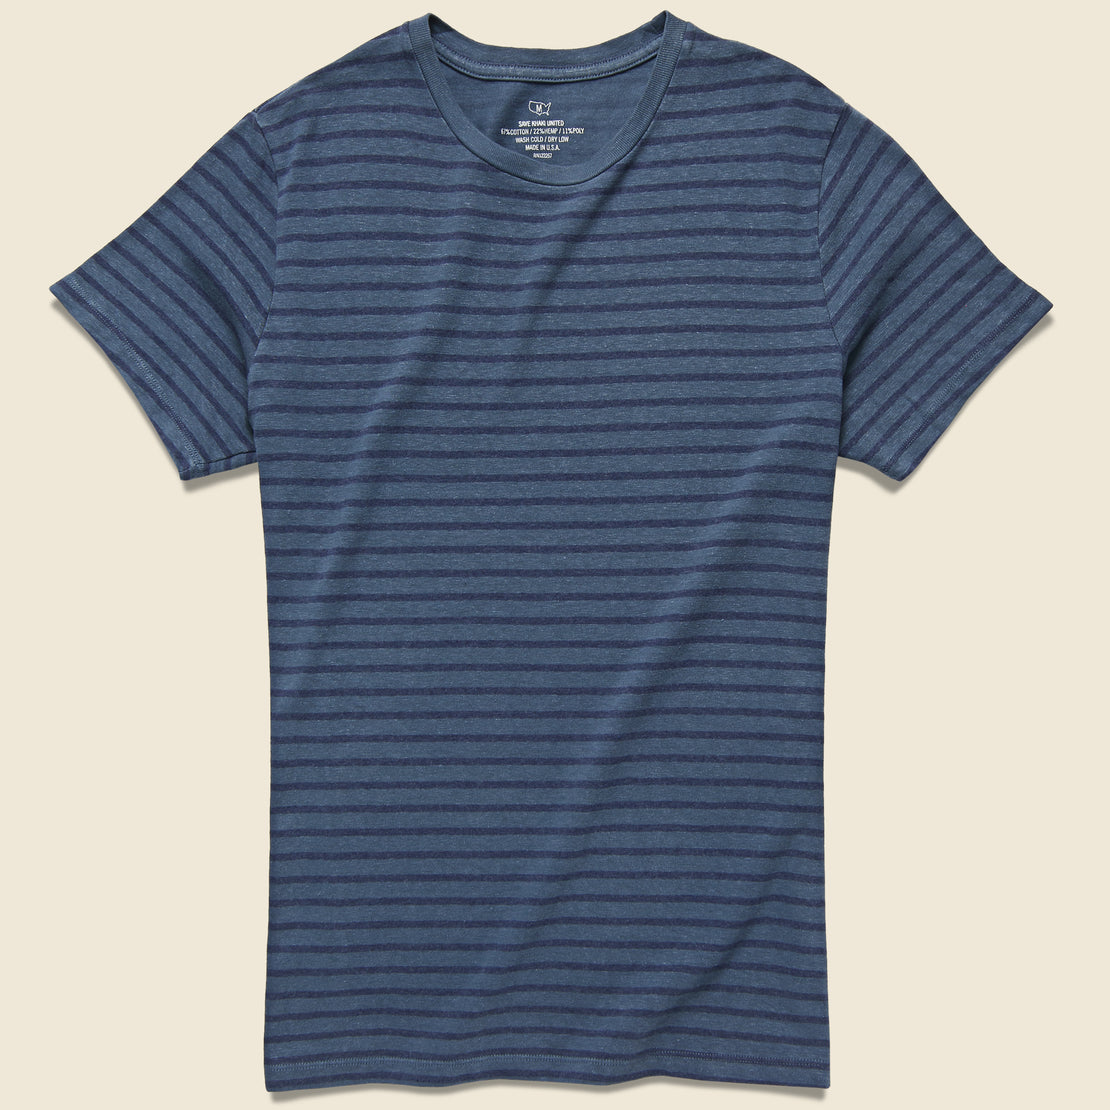 Save Khaki Striped Cotton Hemp Crew Tee - Blue